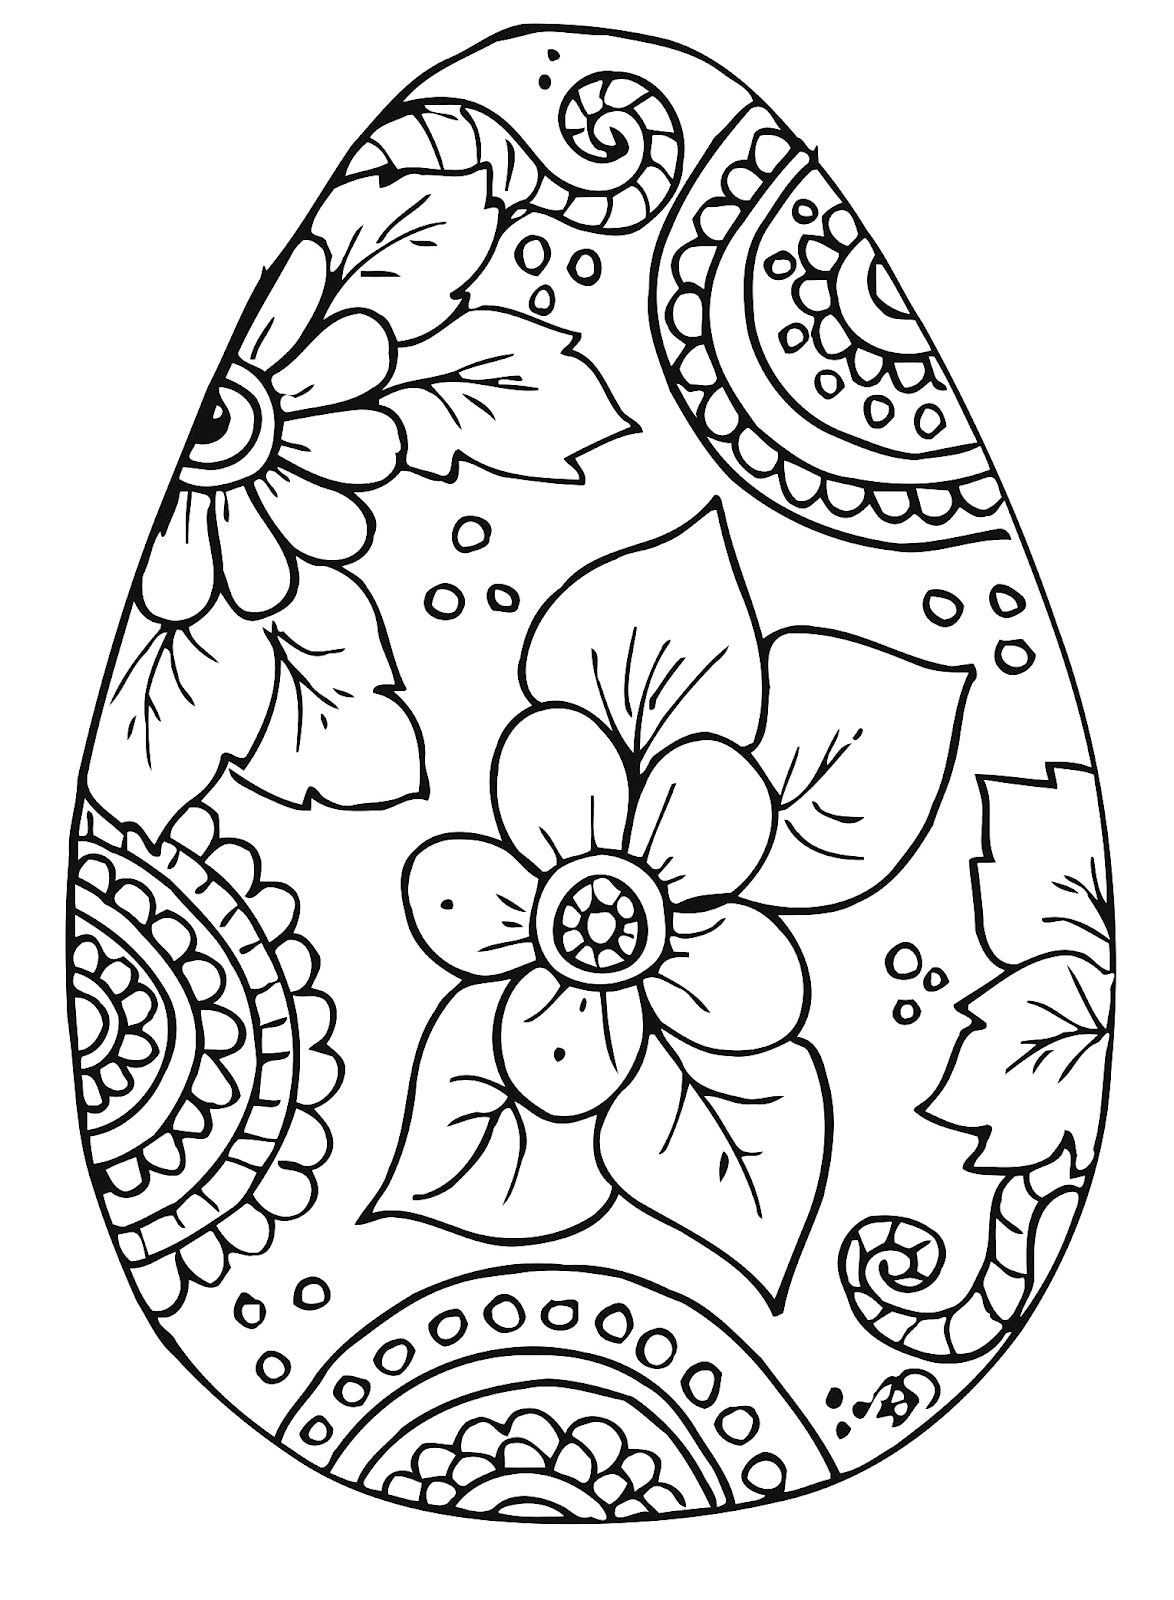 Easter Coloring 10 Cool Free Printable Easter Coloring Pages for Gallery Of Easter Coloring Printable Easter Coloring Pages Coloring Gallery